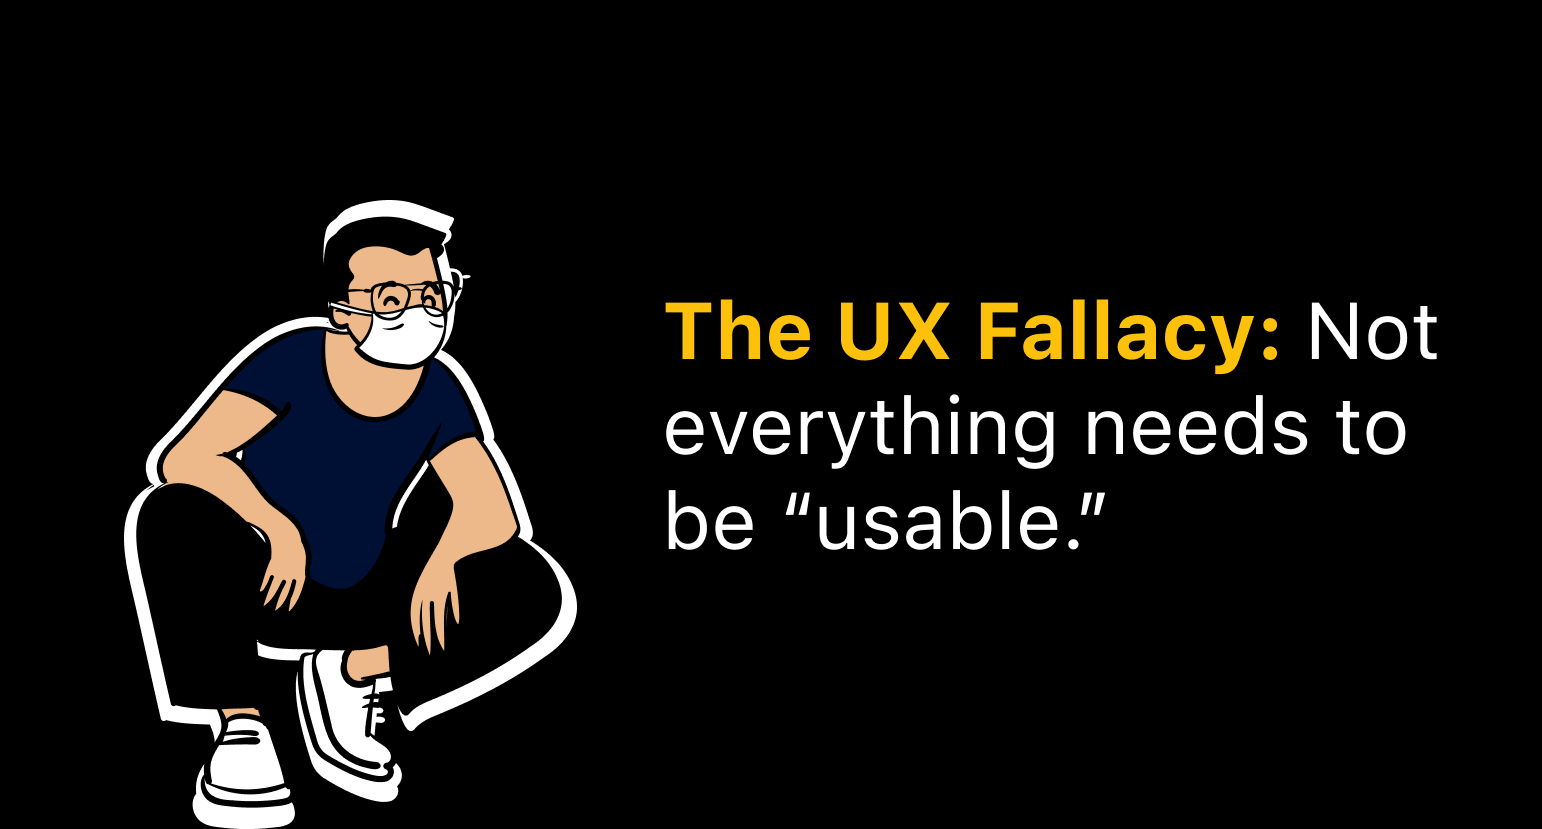 Felix Lee — The UX Fallacy: Not everything needs to be usable.